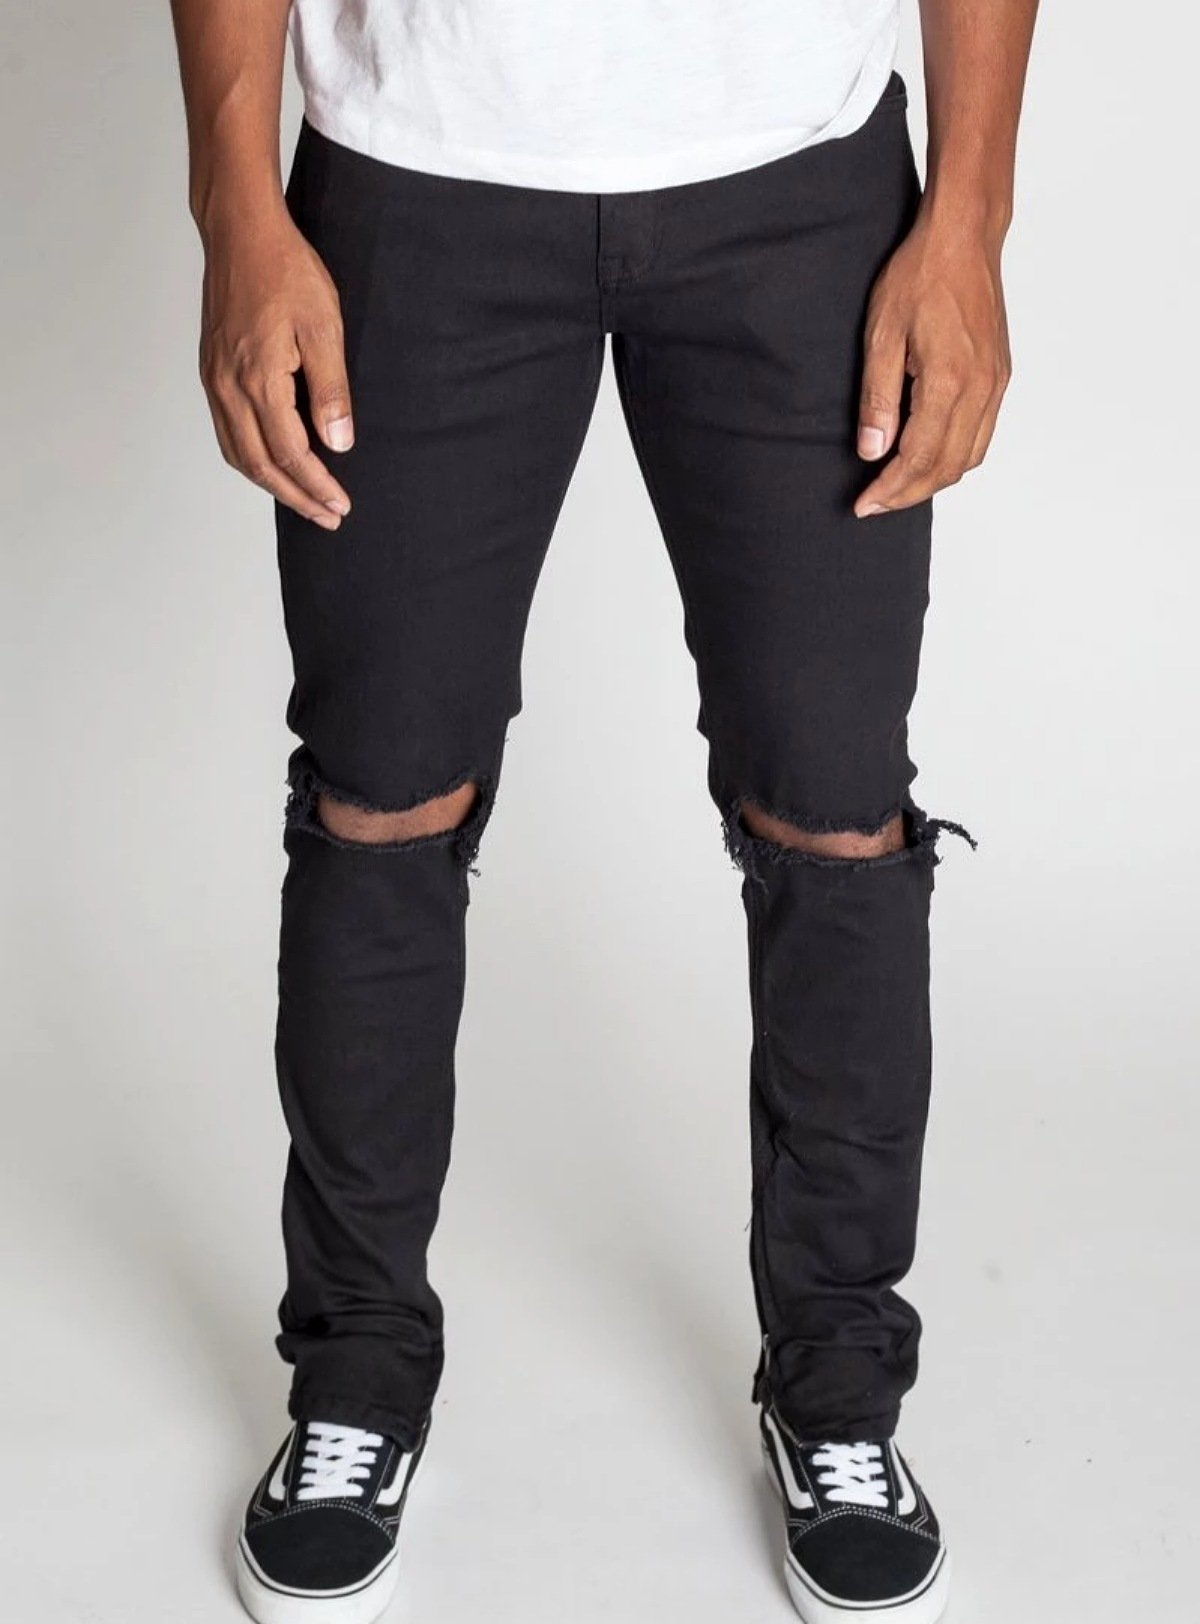 KDNK - Destroyed Knee Ankle Zip - All Black - KNB3119